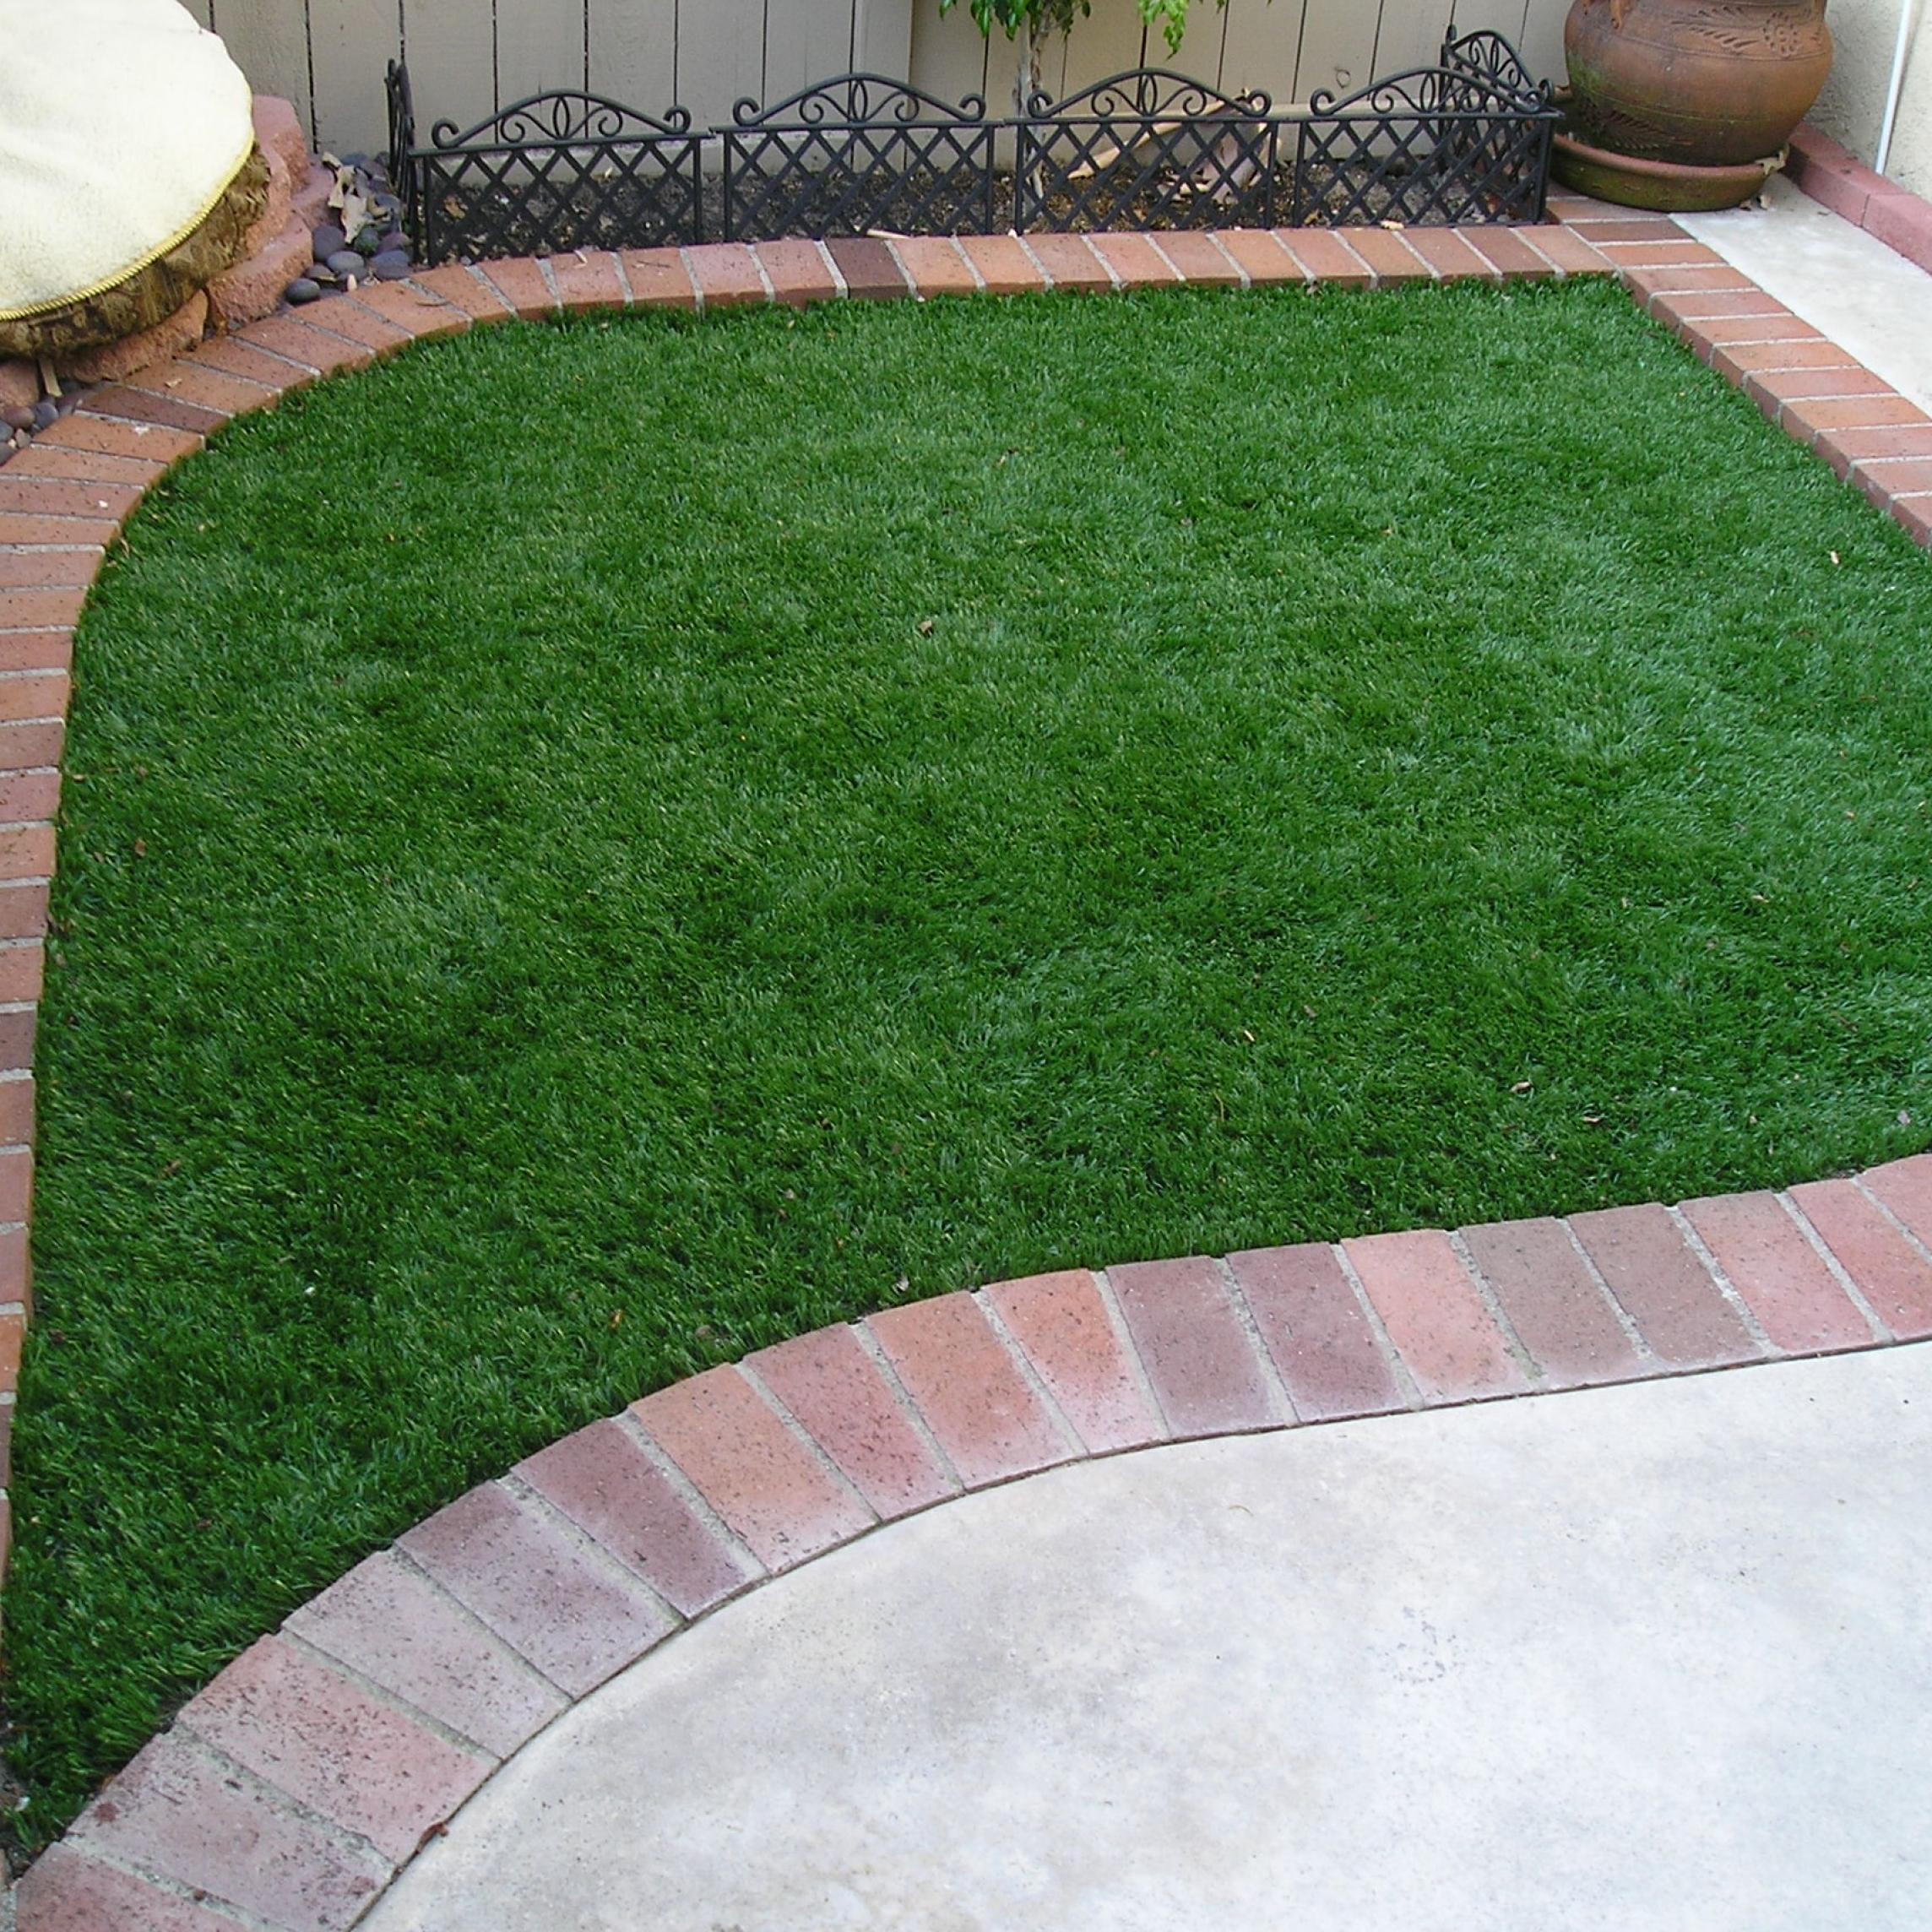 S Blade-90 best artificial grass,best fake grass,best synthetic grass,best turf,best artificial grass for home,artificial lawn,synthetic lawn,fake lawn,turf lawn,fake grass lawn